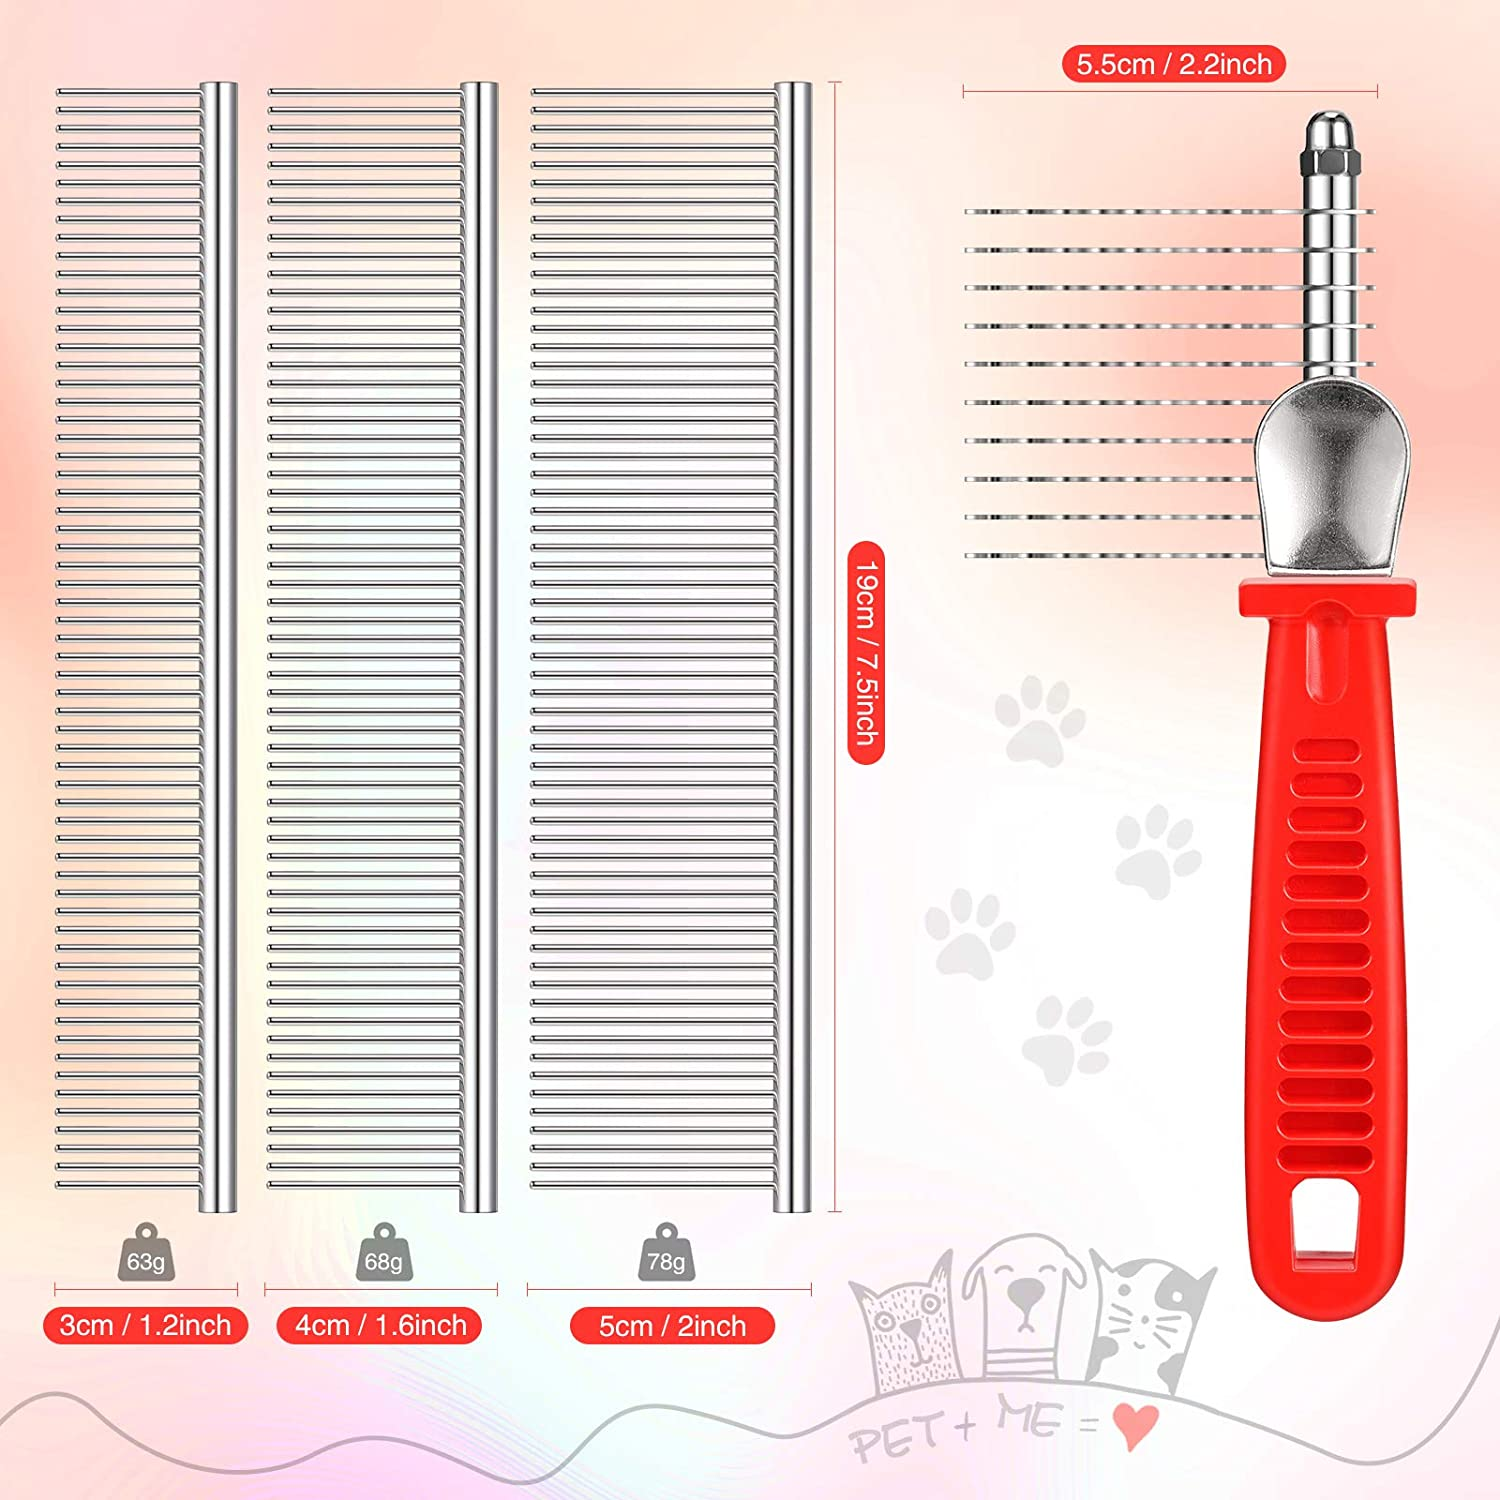 Pet Dematting Comb with 3 Stainless Steel Dog Comb with Rounded Ends Fur Rake Comb Pet Grooming Tool for Long and Short Hair Dogs Cats to Trim Dead Matted Knotted Undercoat